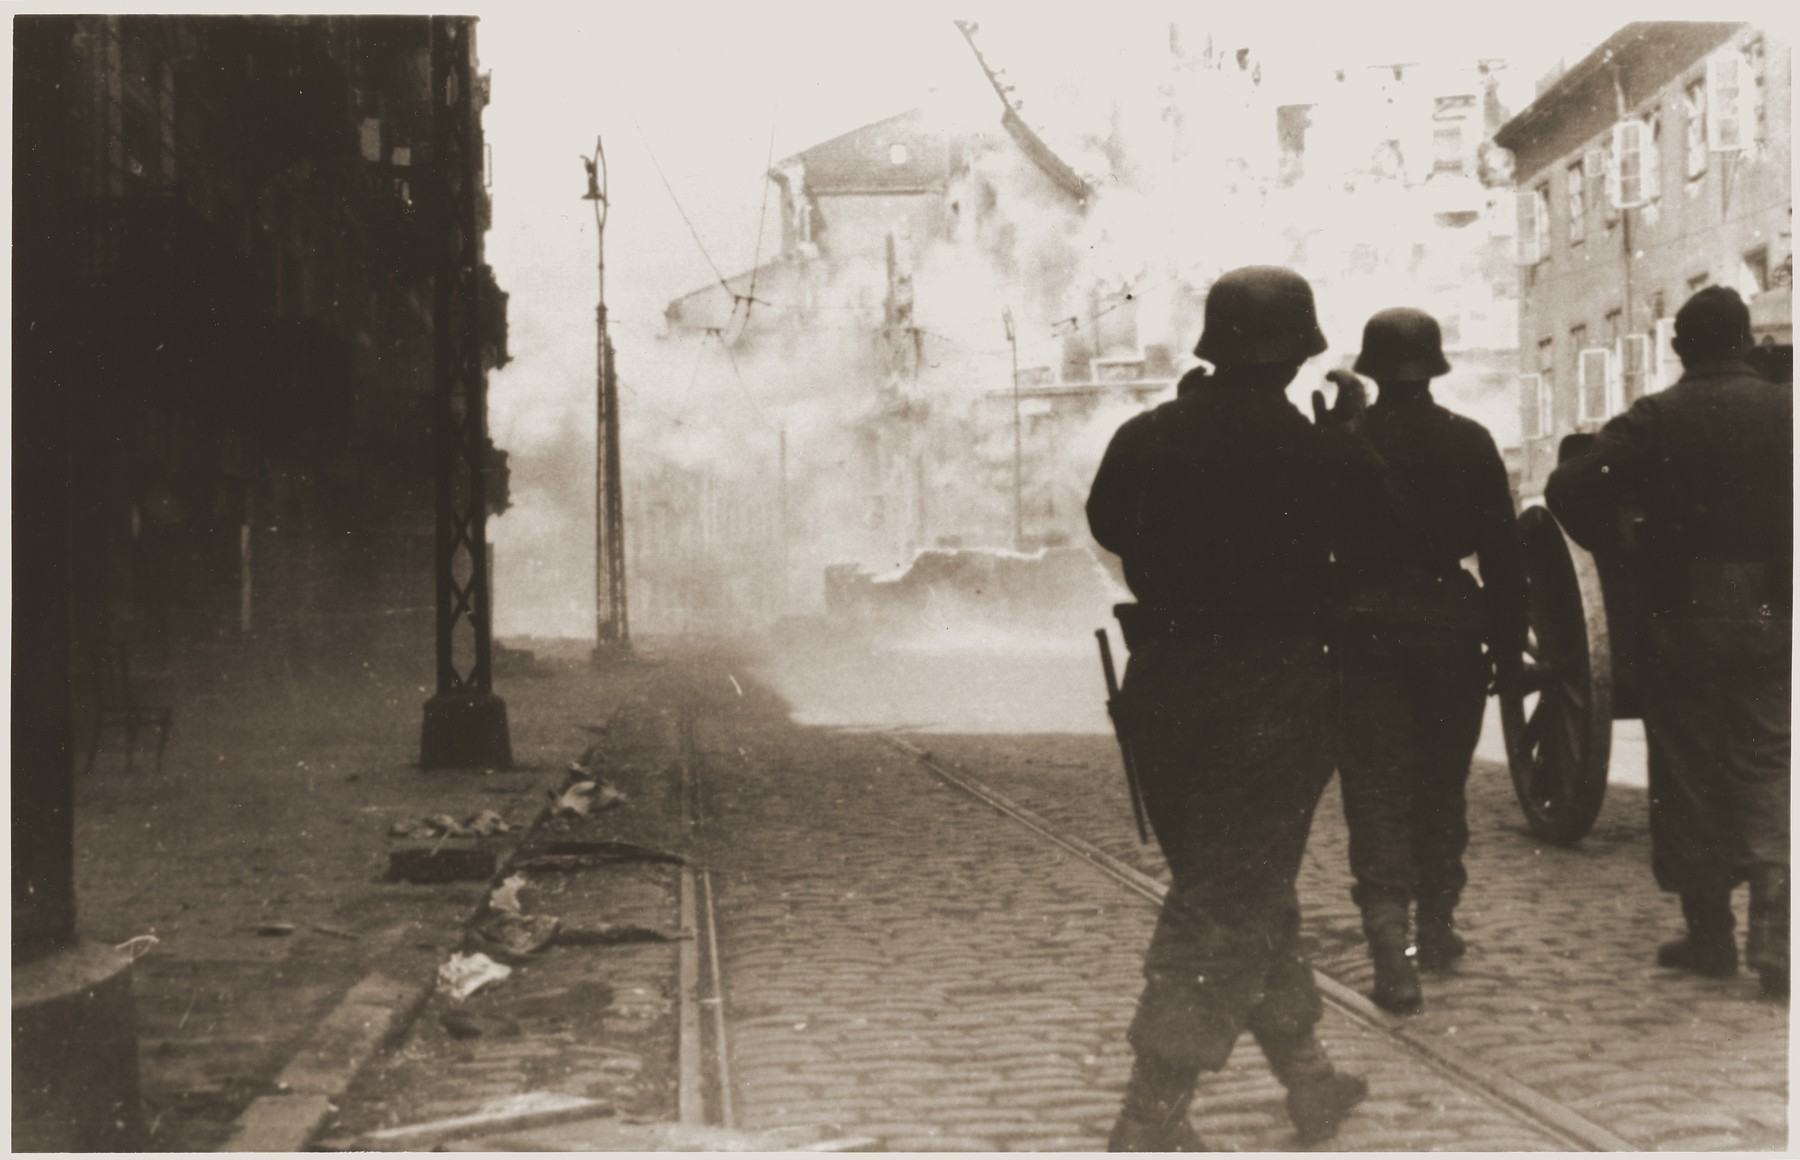 A German gun crew shells a housing block during the suppression of the Warsaw ghetto uprising.